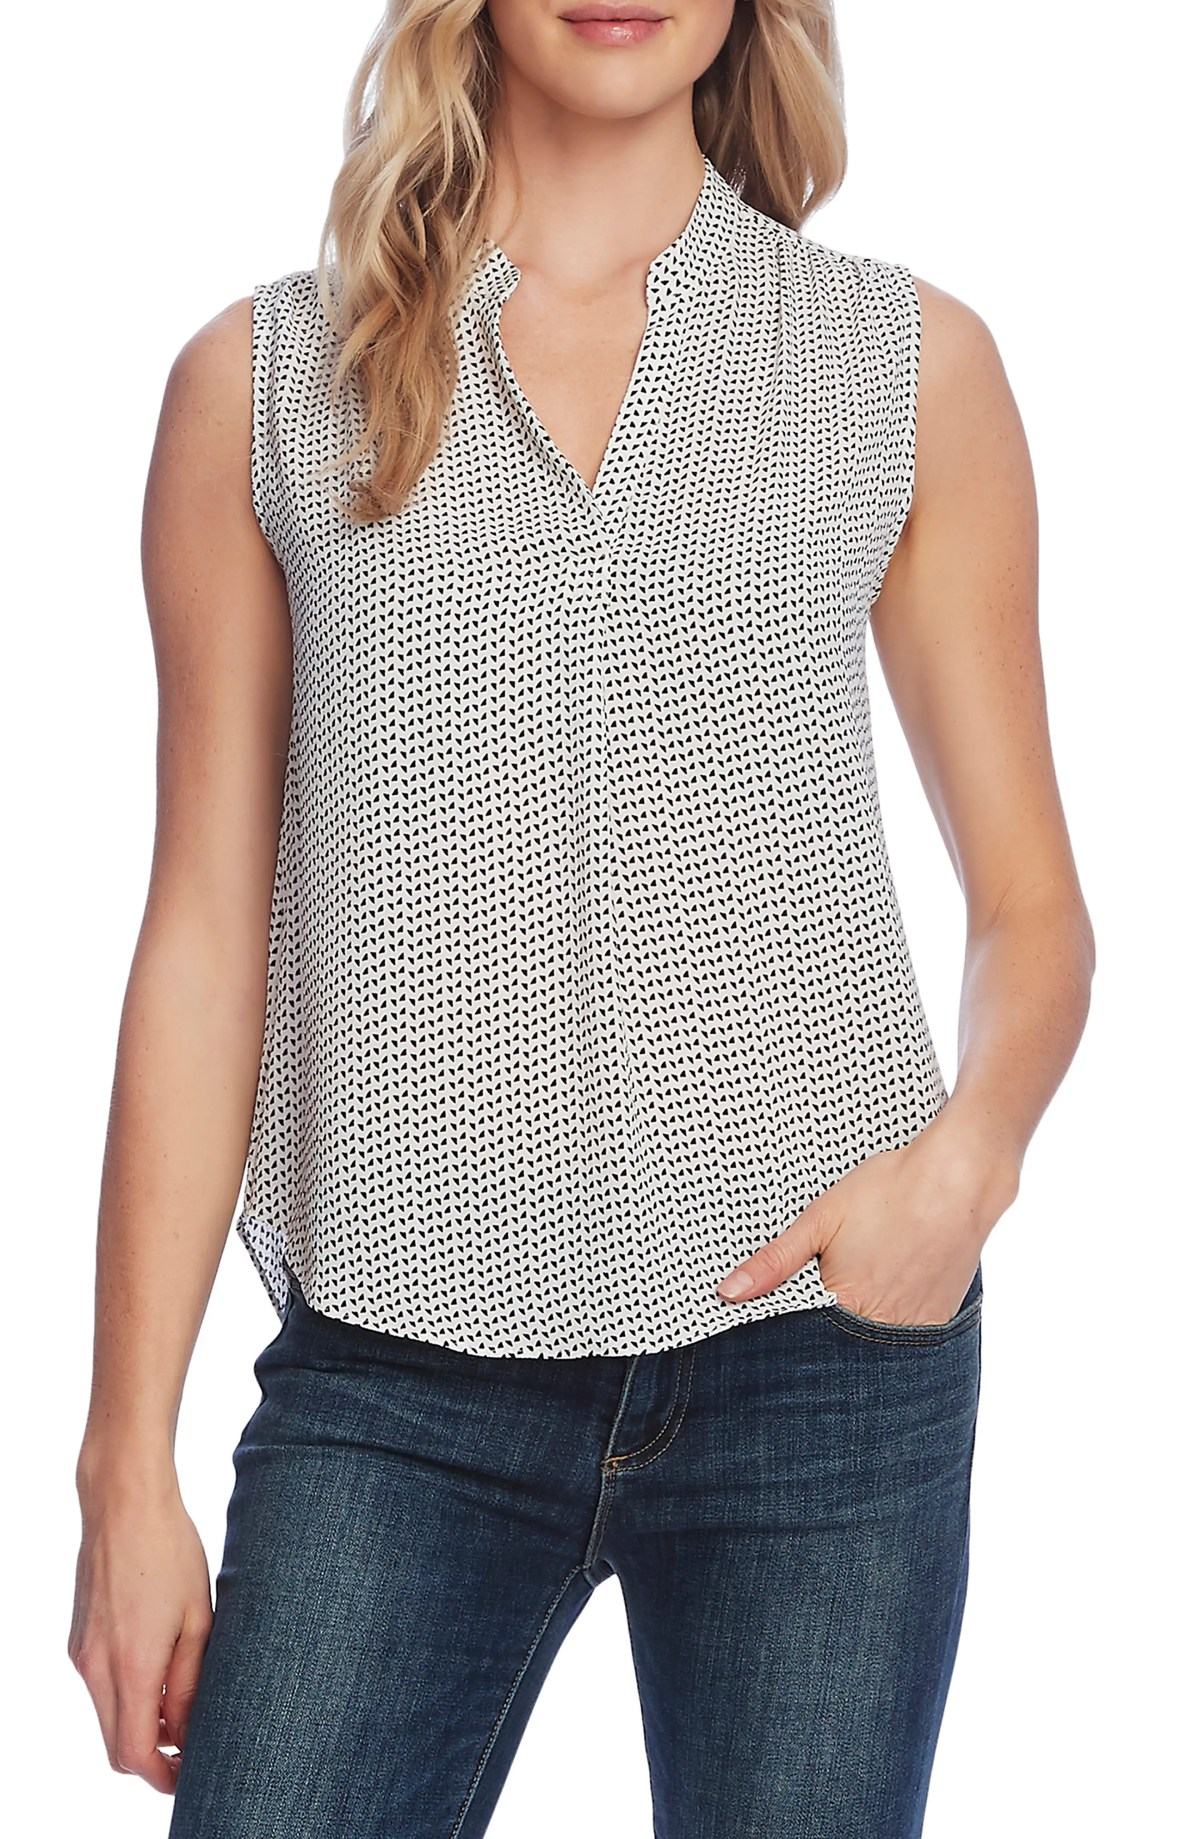 VINCE CAMUTO Print Sleeveless Top, Main, color, NEW IVORY